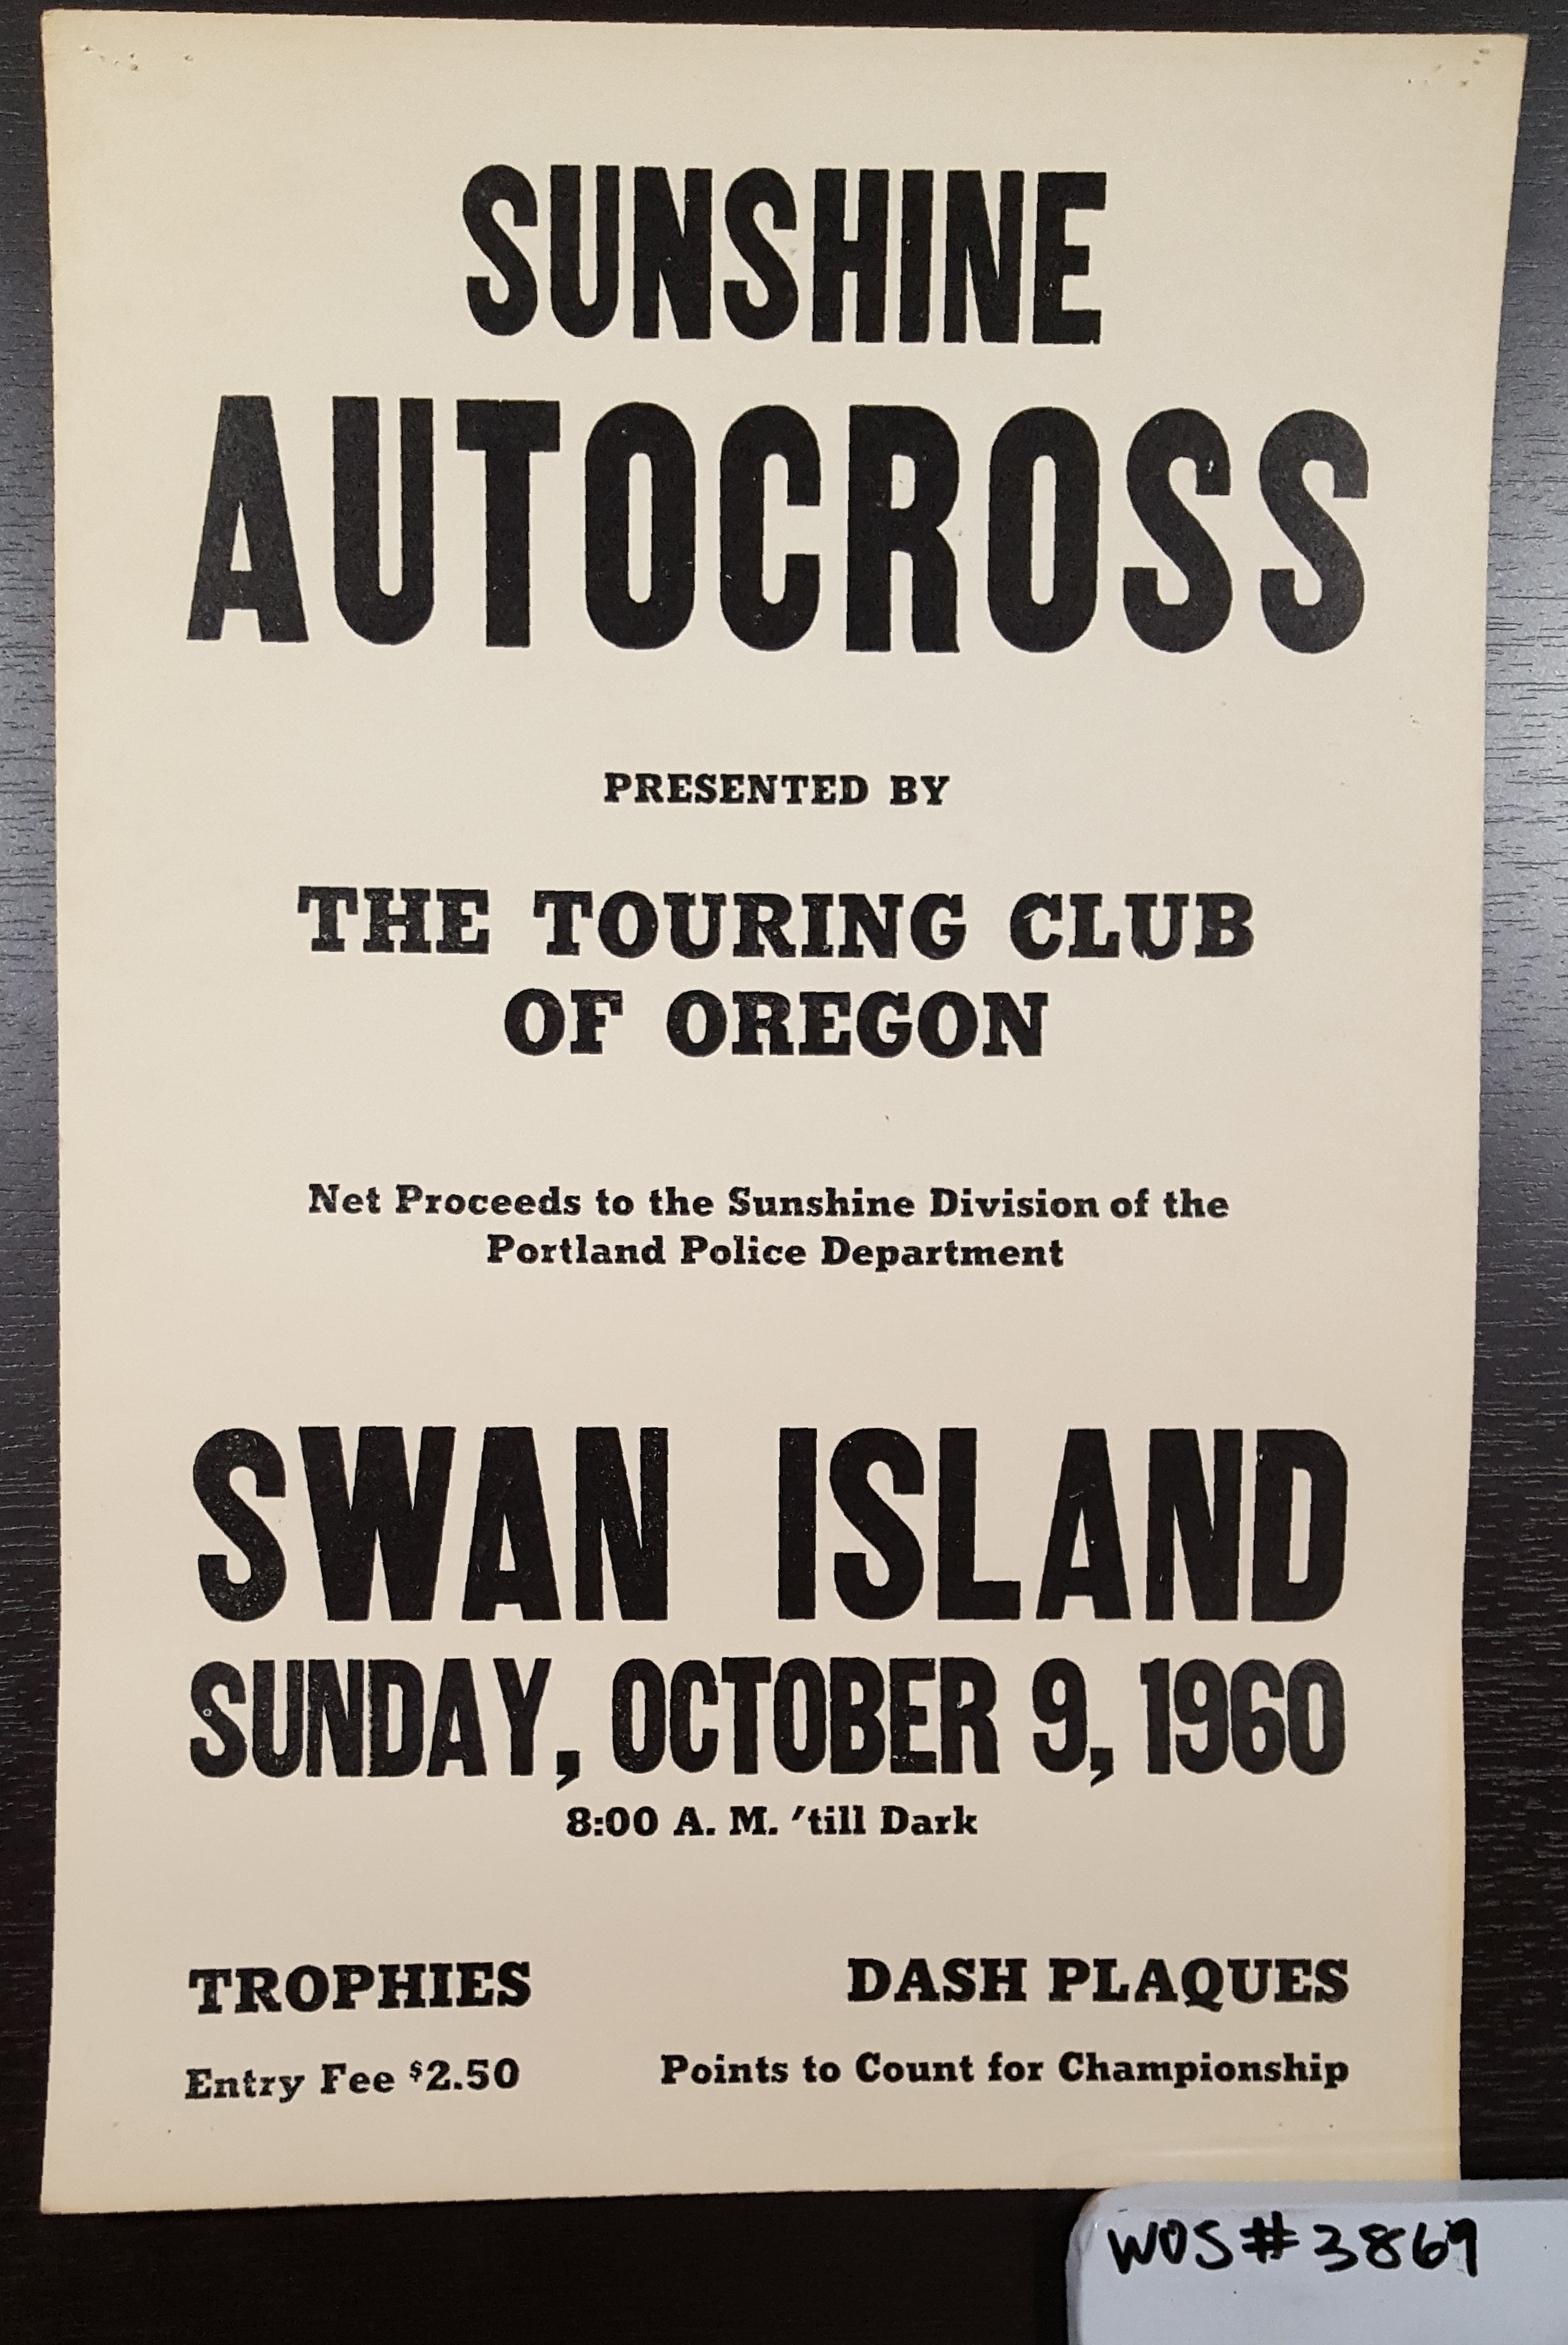 Sunshine Autocross Poster, Swan Island, Portland, OR; WOS#3869